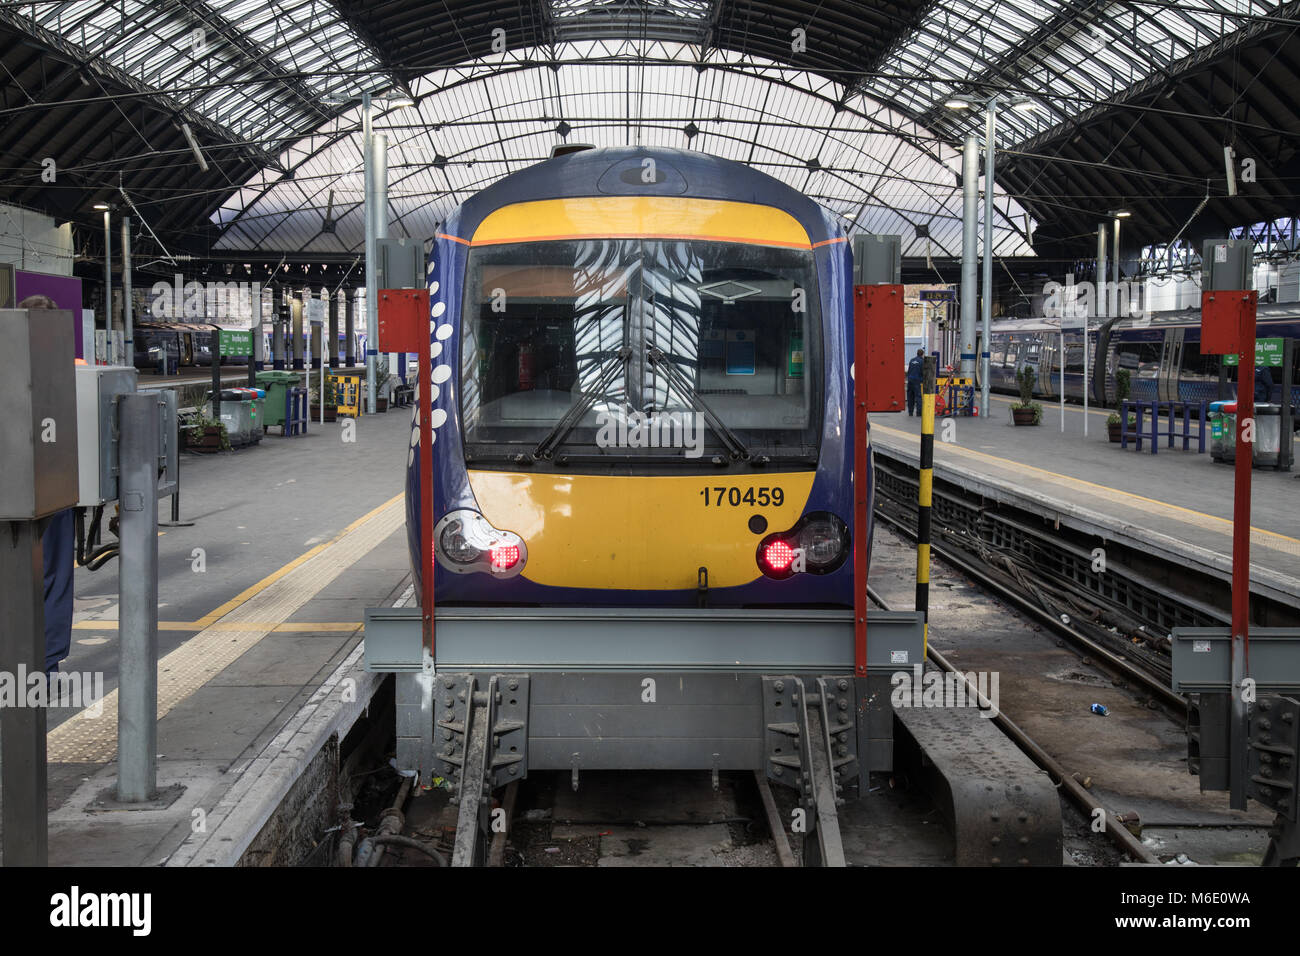 A Class 170 Turbostar Diesel Train at Glasgow Queen Street Train Station - Stock Image